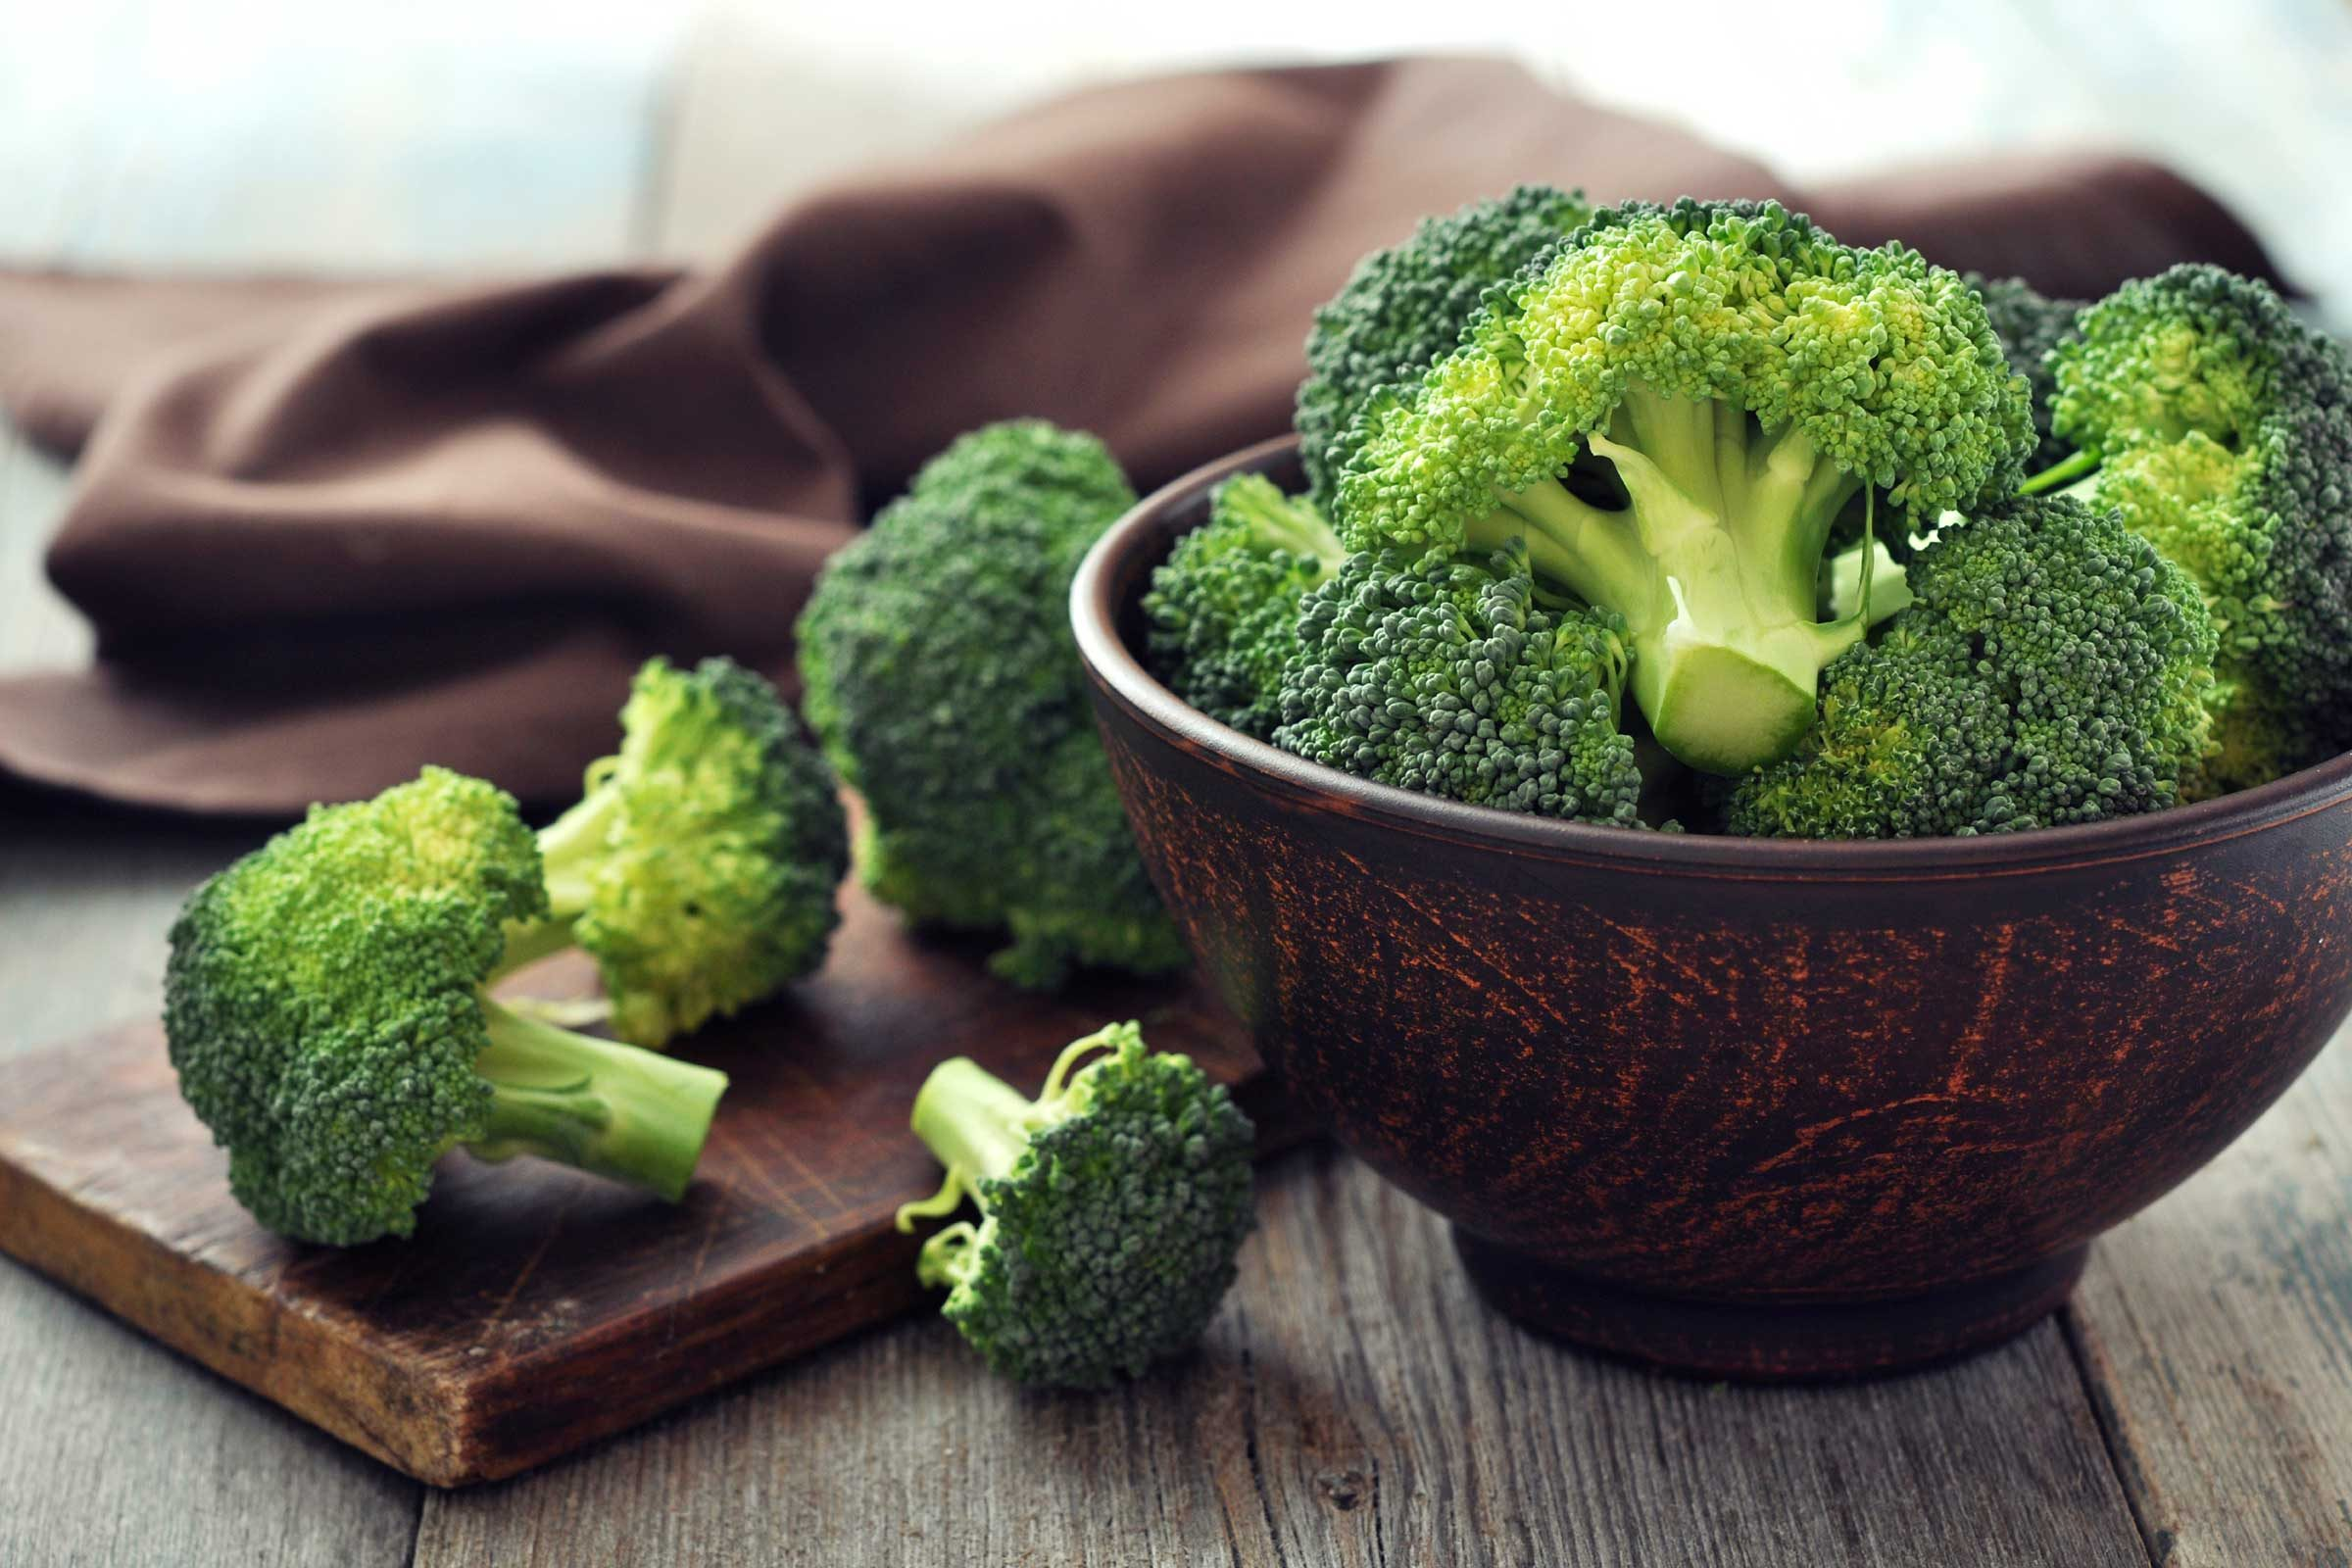 Eat your fill of broccoli, but steam it rather than microwaving it